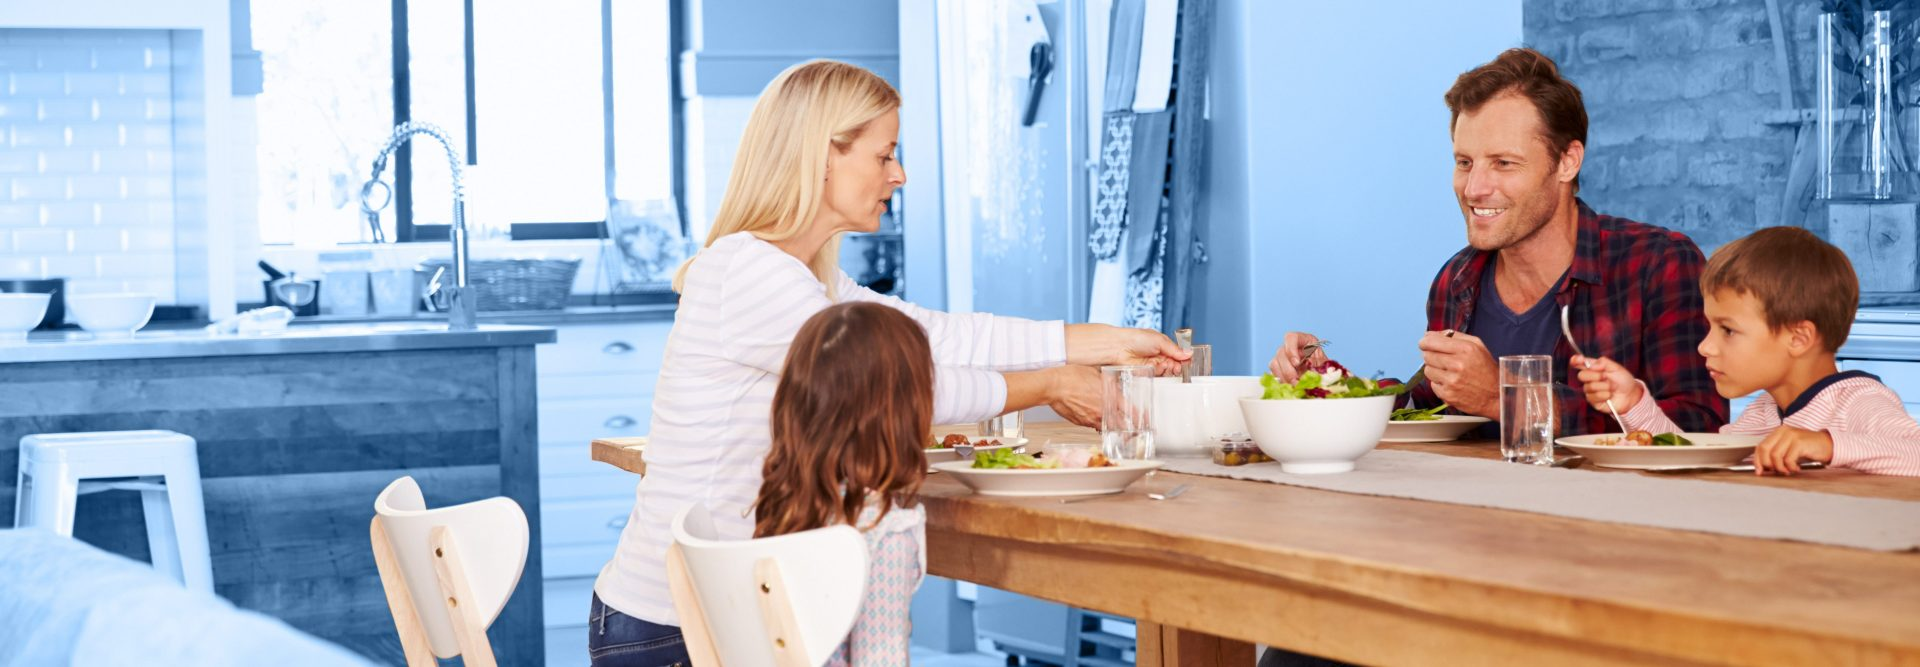 Parents and 2 children eating a meal at their kitchen table